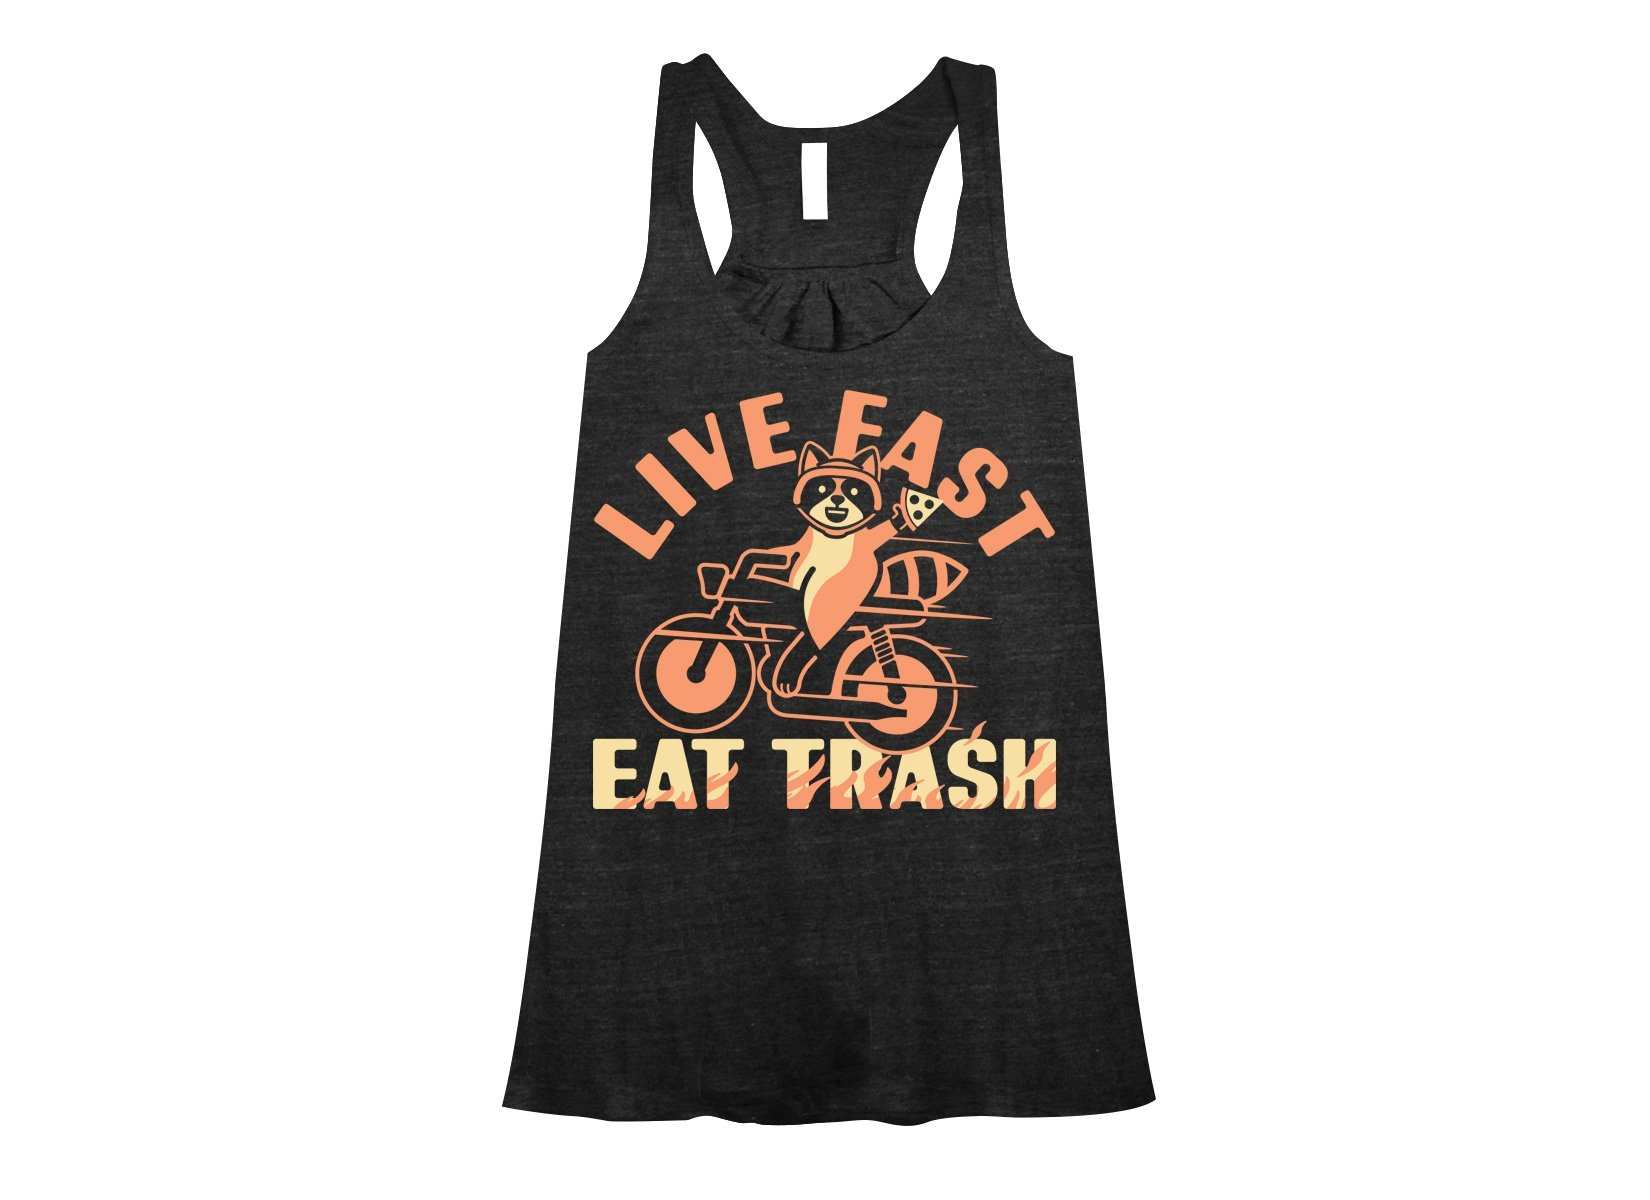 Live Fast Eat Trash on Womens Tanks T-Shirt